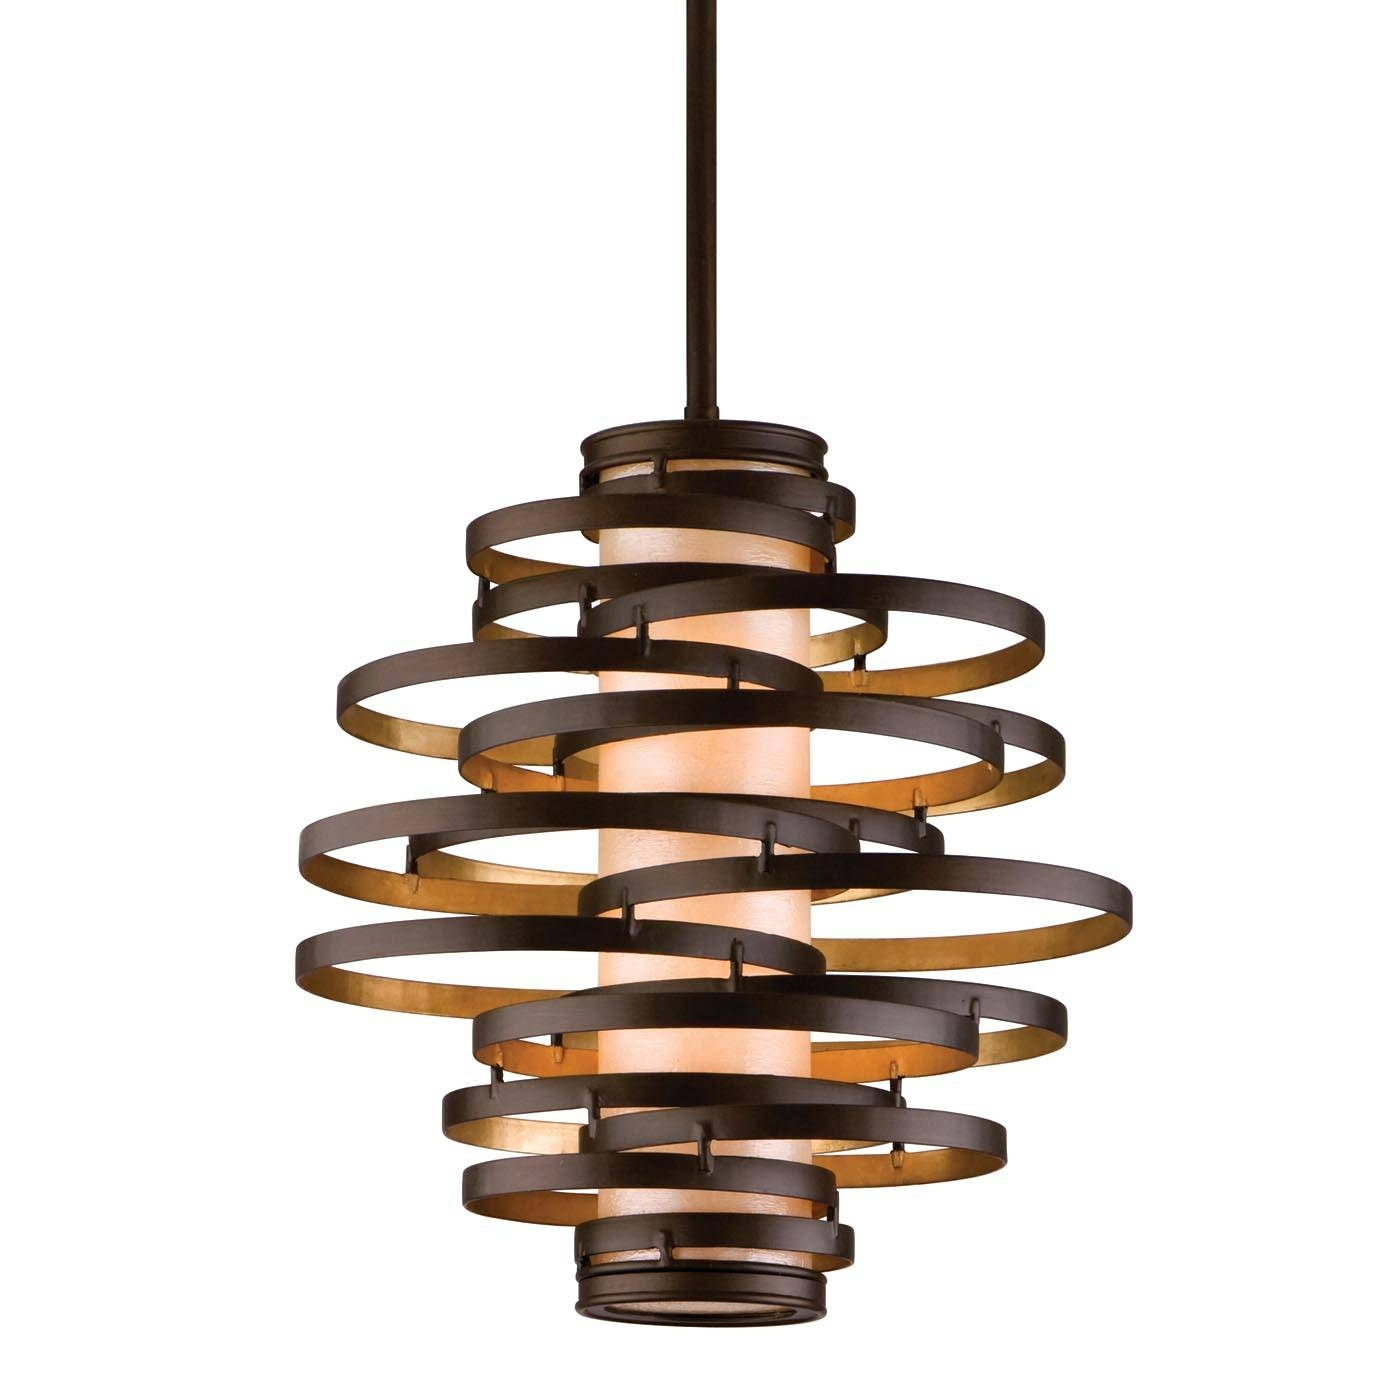 Corbett Lighting Vertigo Hanging Foyer Light | The Mine with Contemporary Pendant Lights Australia (Image 5 of 15)